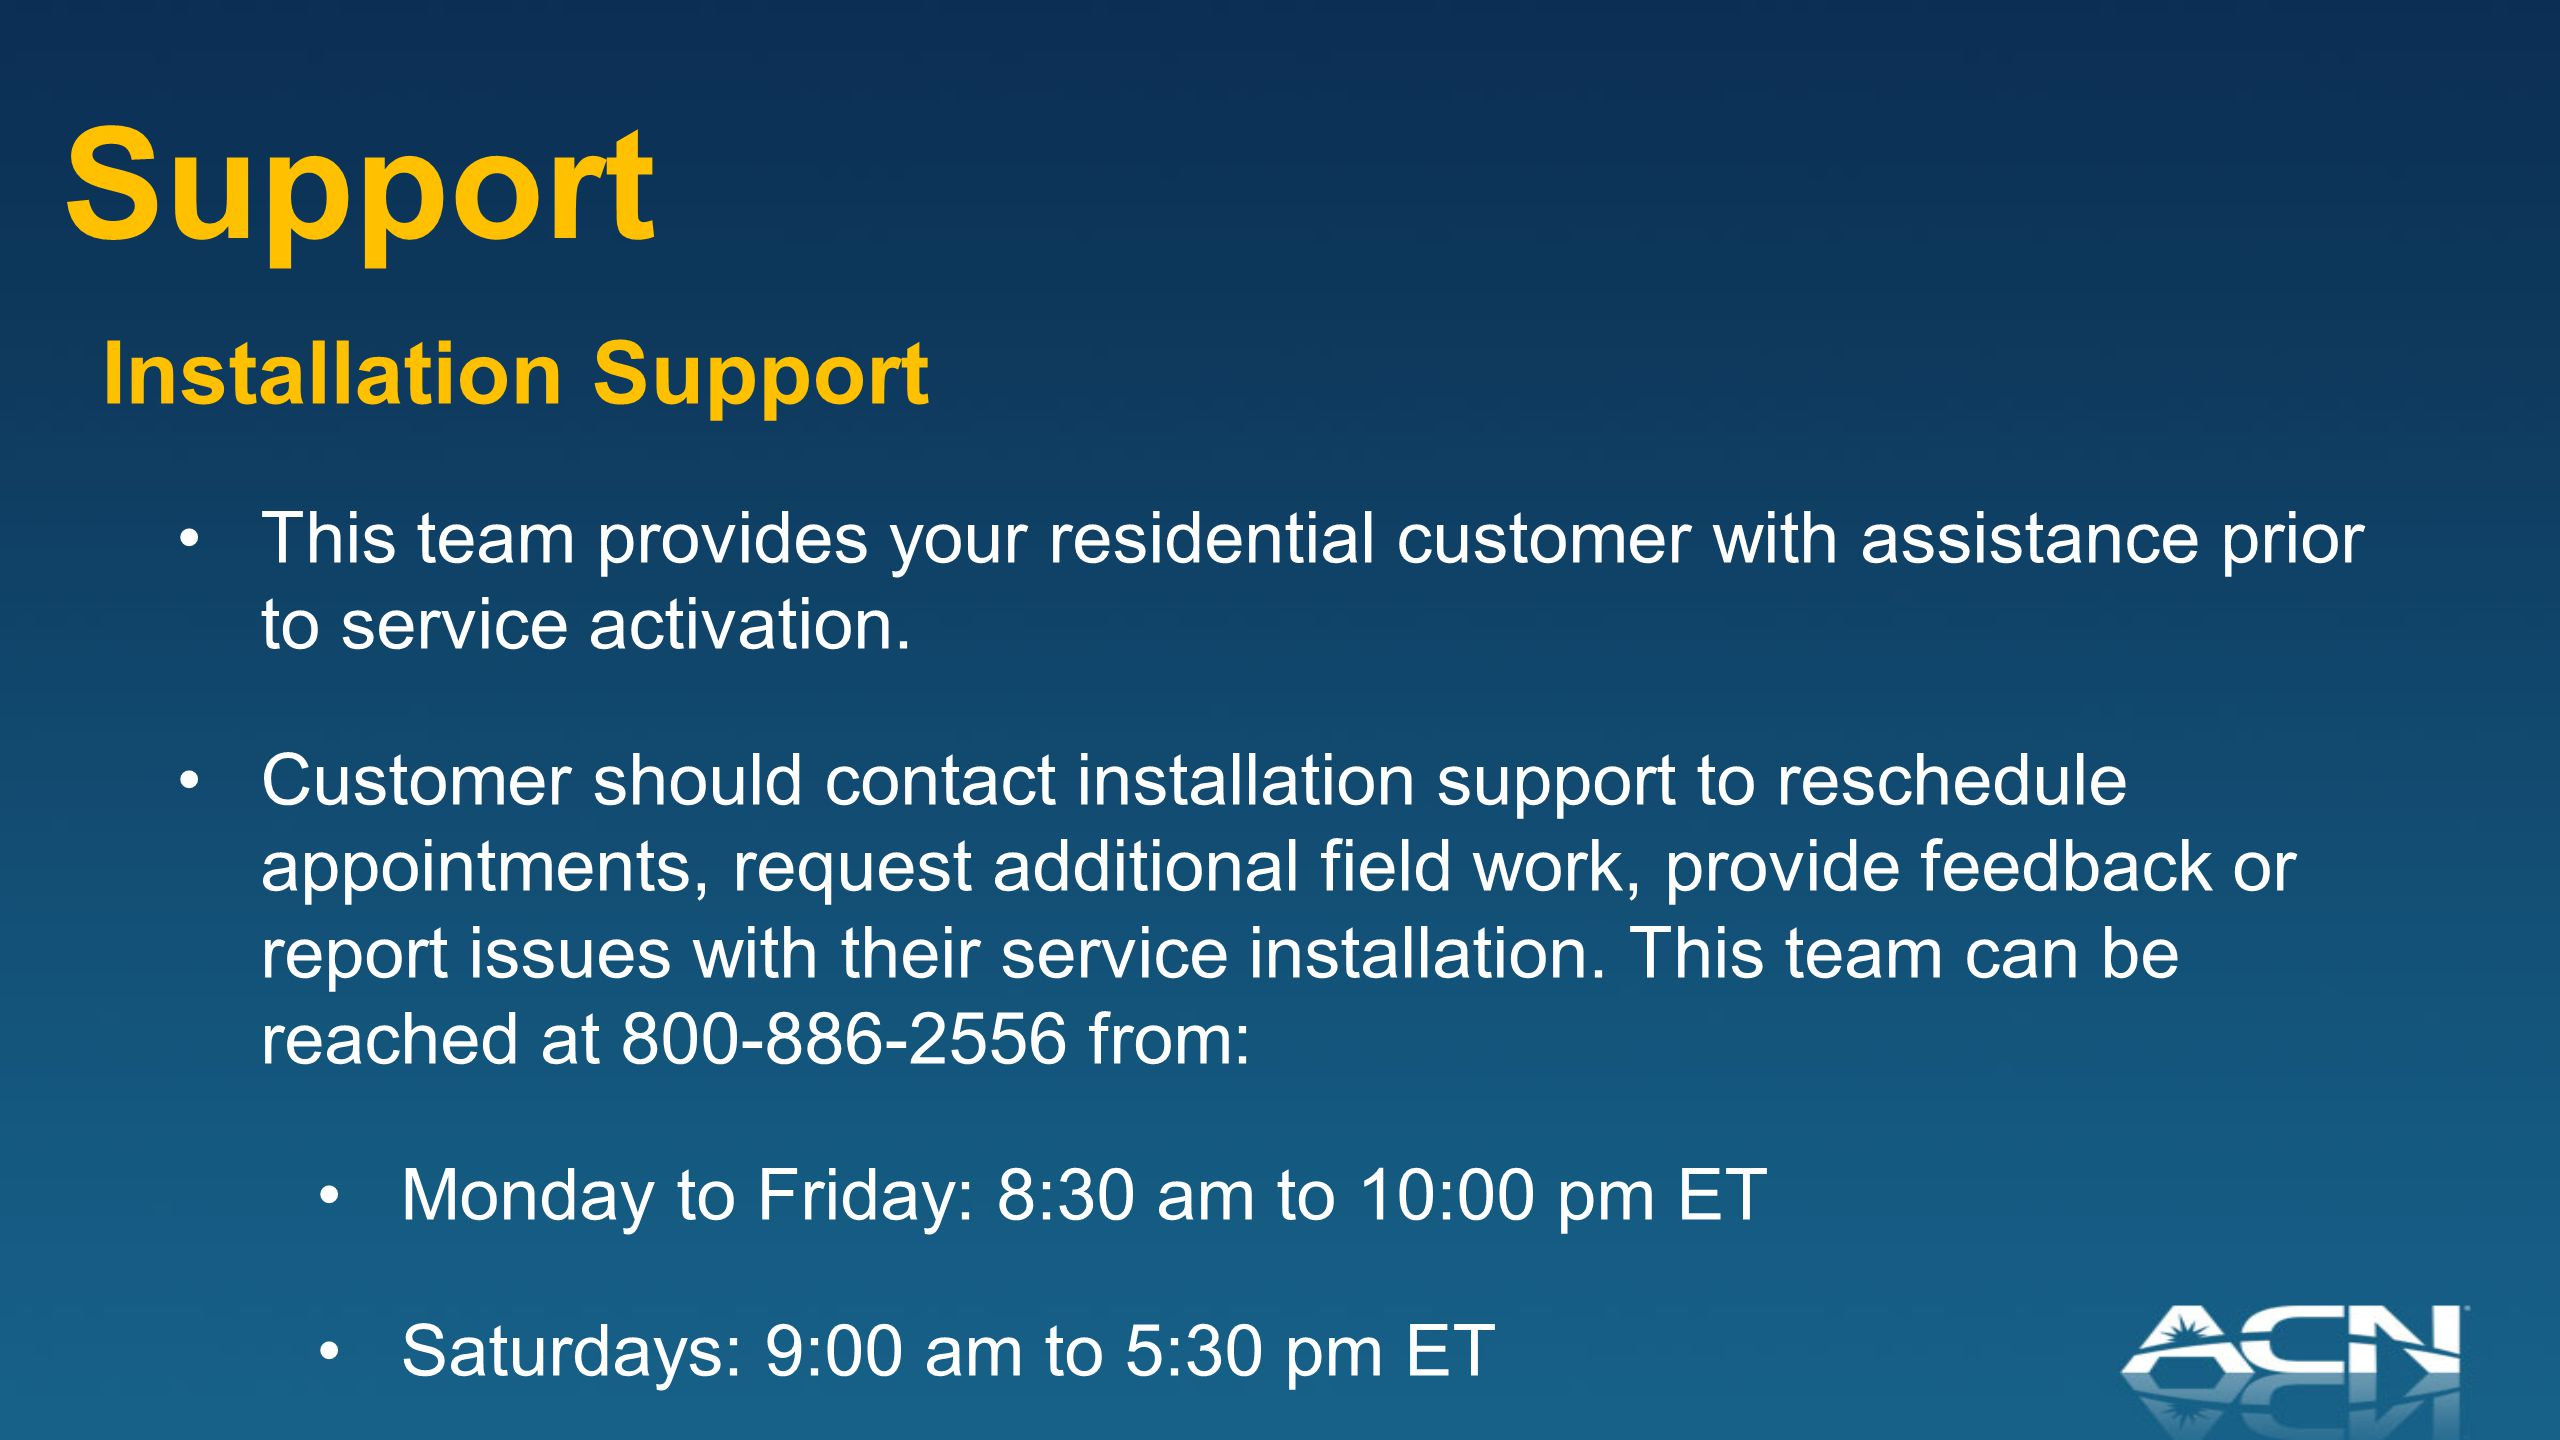 Installation Support This team provides your residential customer with assistance prior to service activation.